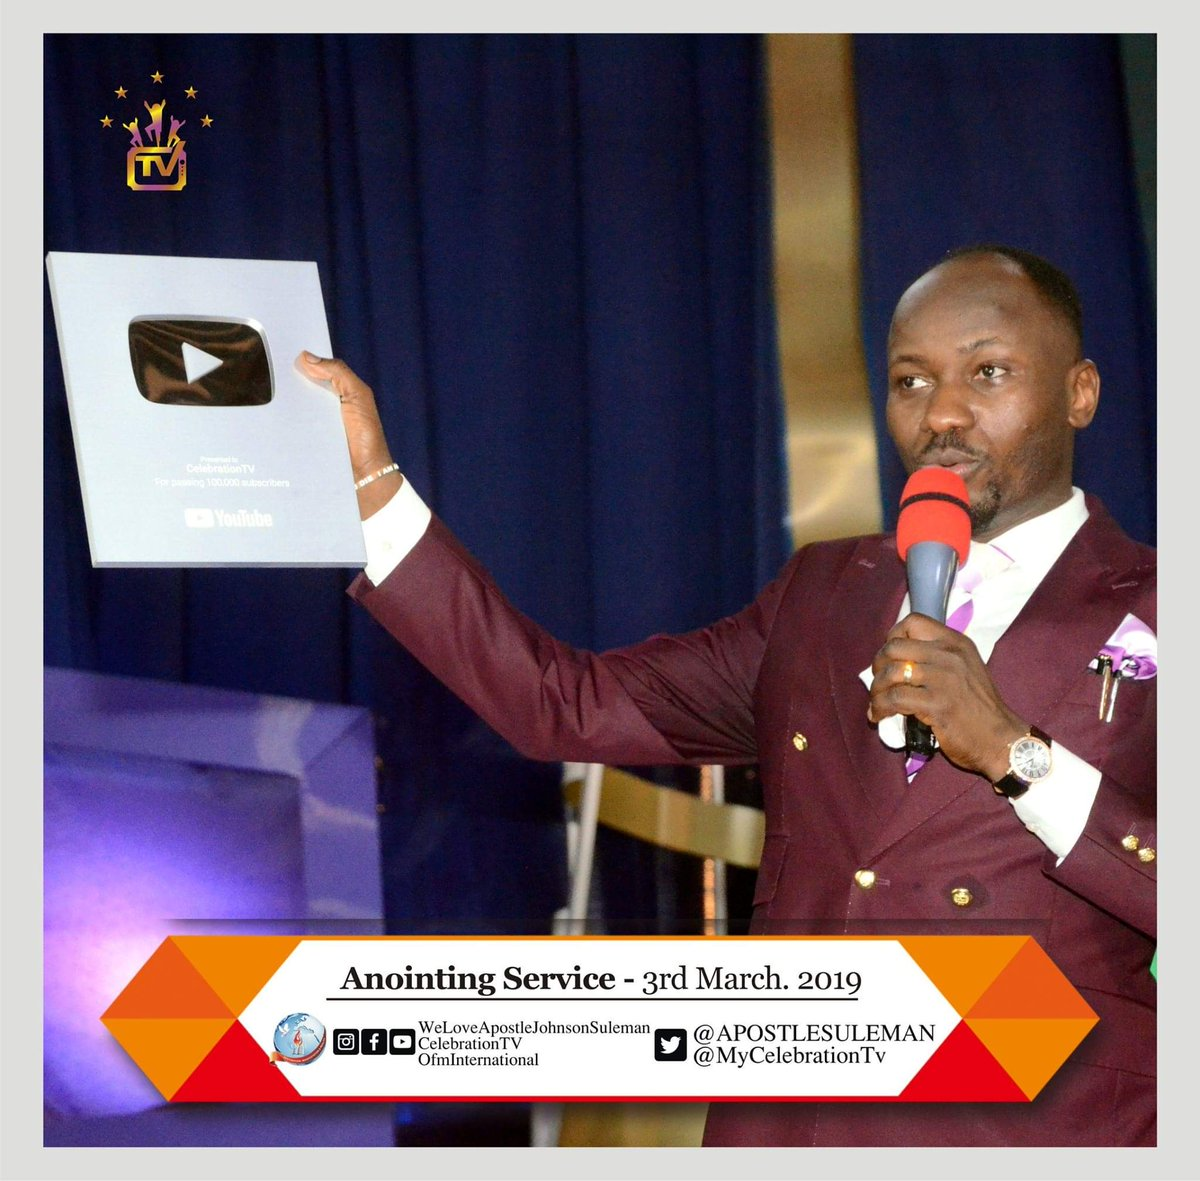 Ofm Hamburggermany On Twitter The Ceo Of Celebration Tv Apostle Johnson Suleman Has Received A Silver Creator S Award From Youtube For Passing 100 000 Subscribers Anointing Service Ofm Hq 2nd Service Apostlejohnsonsuleman